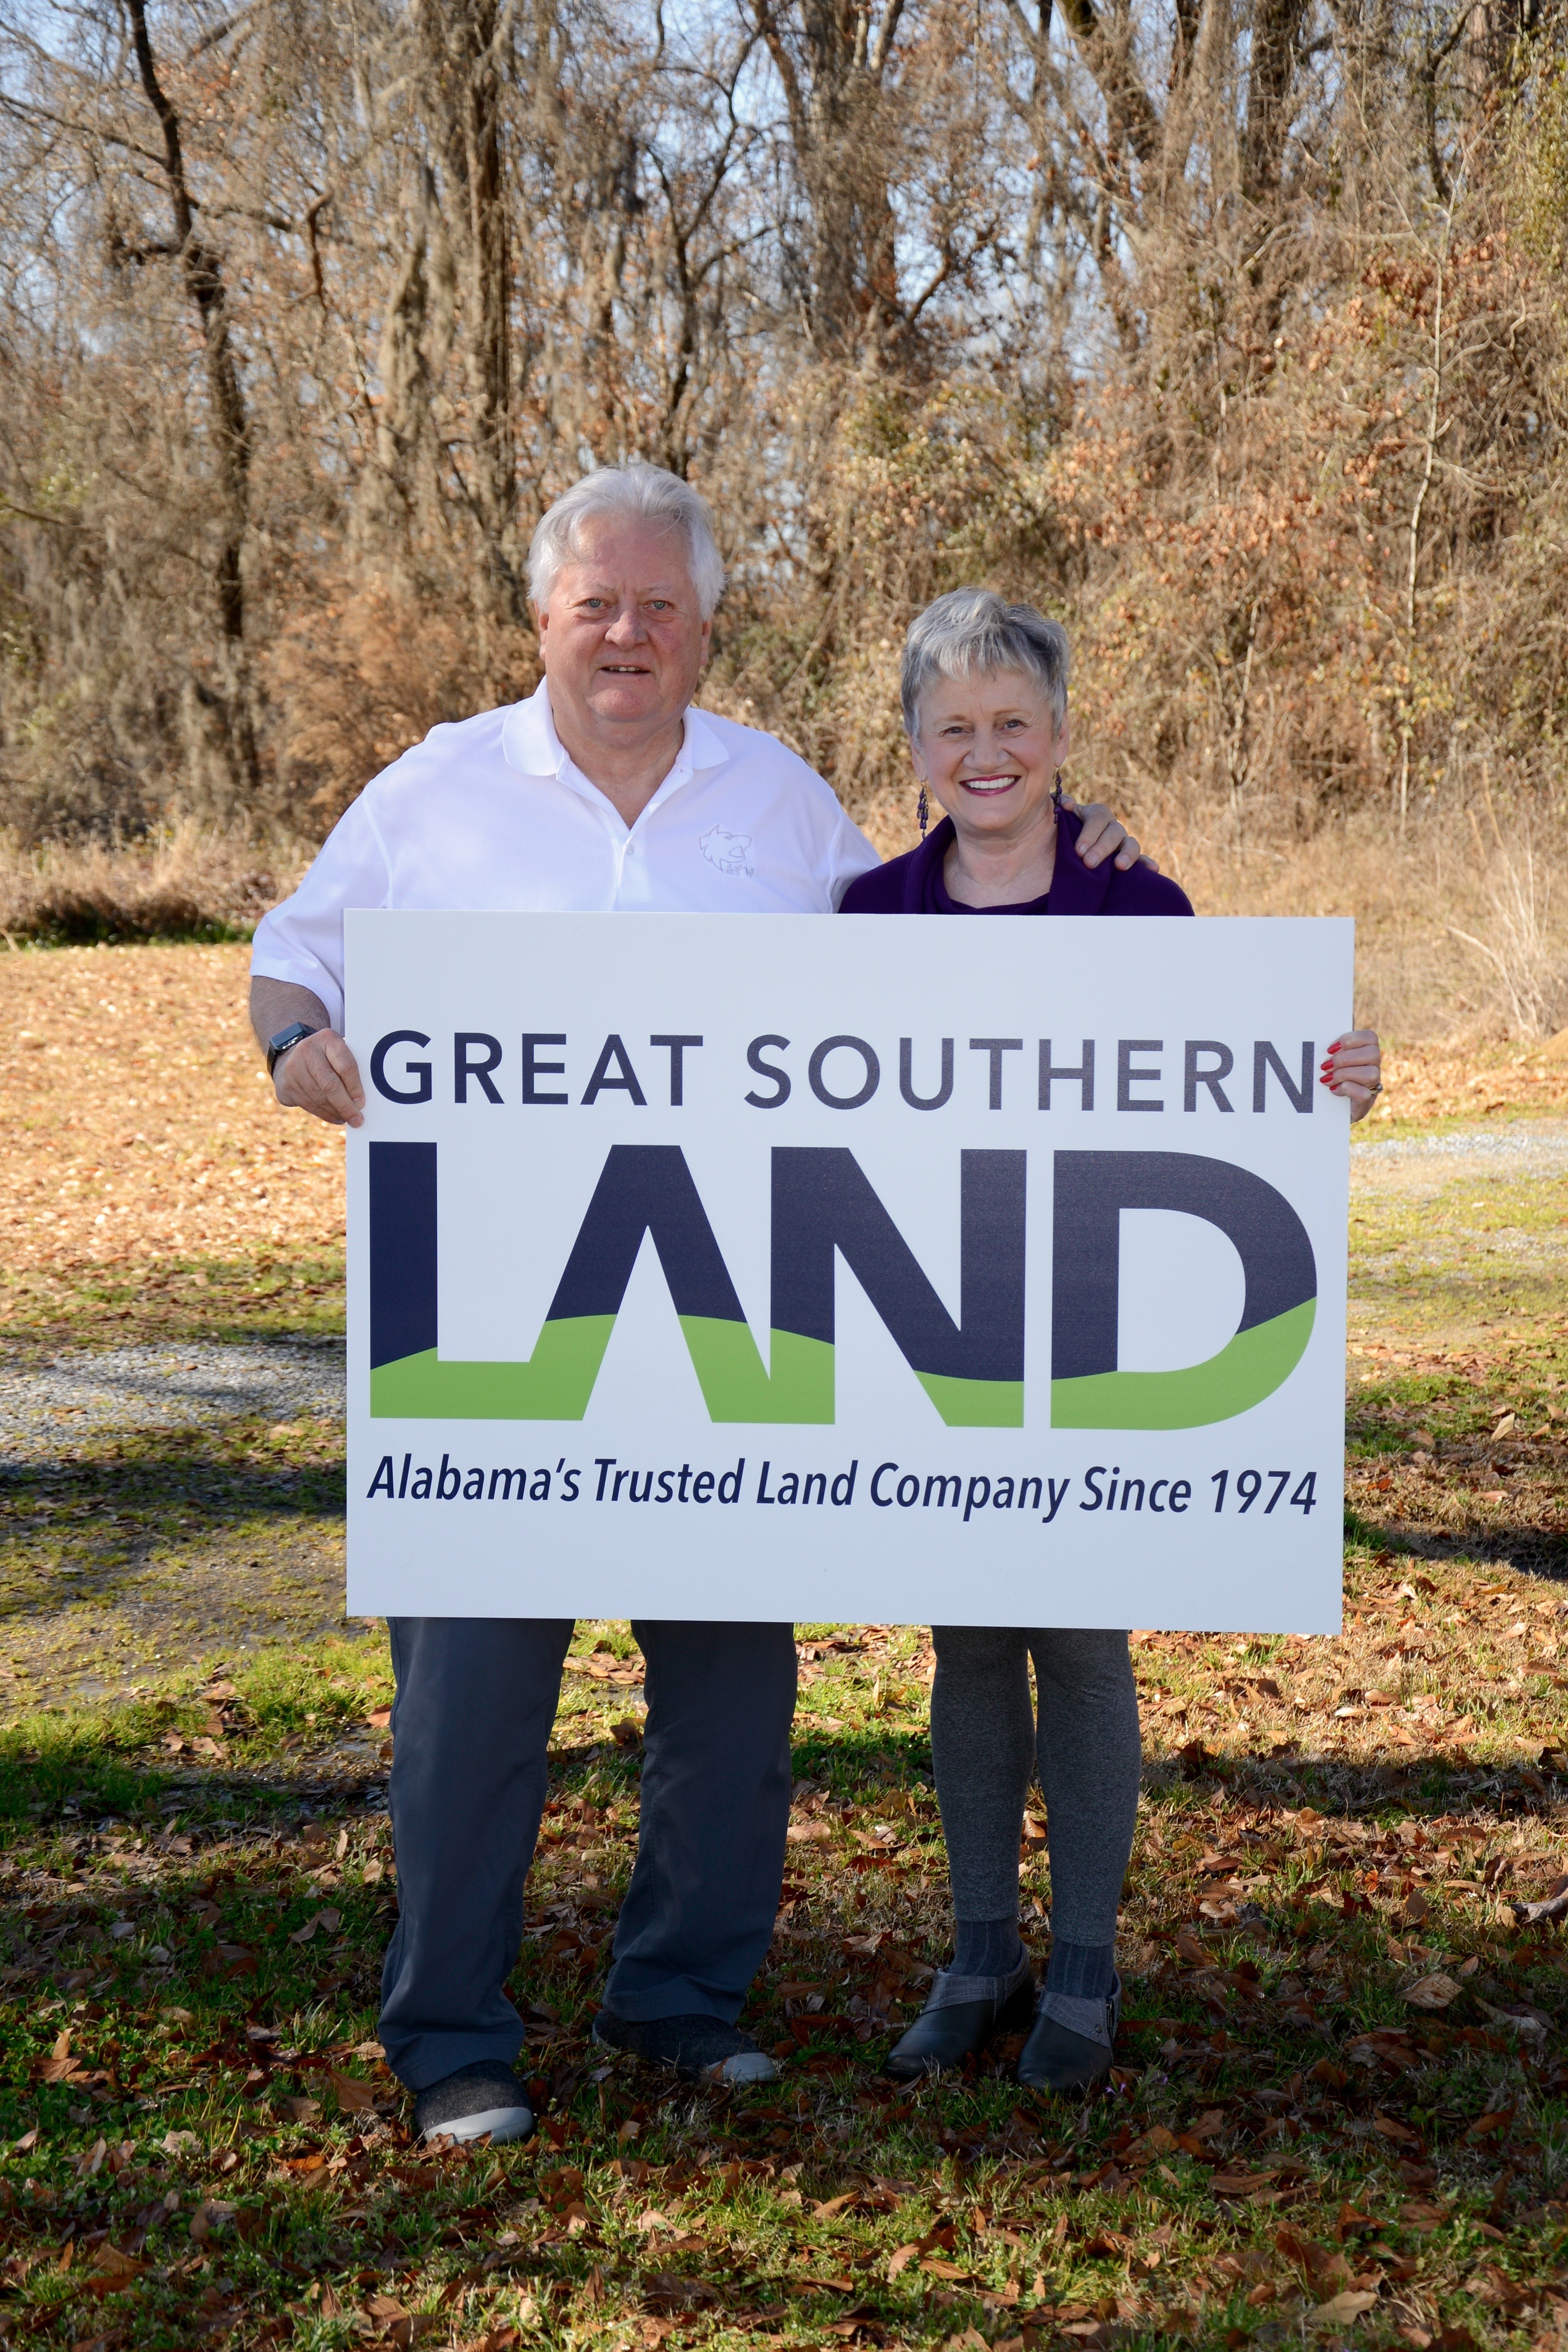 Real Estate Leader Prepares For His Next 45 years In The Land Industry